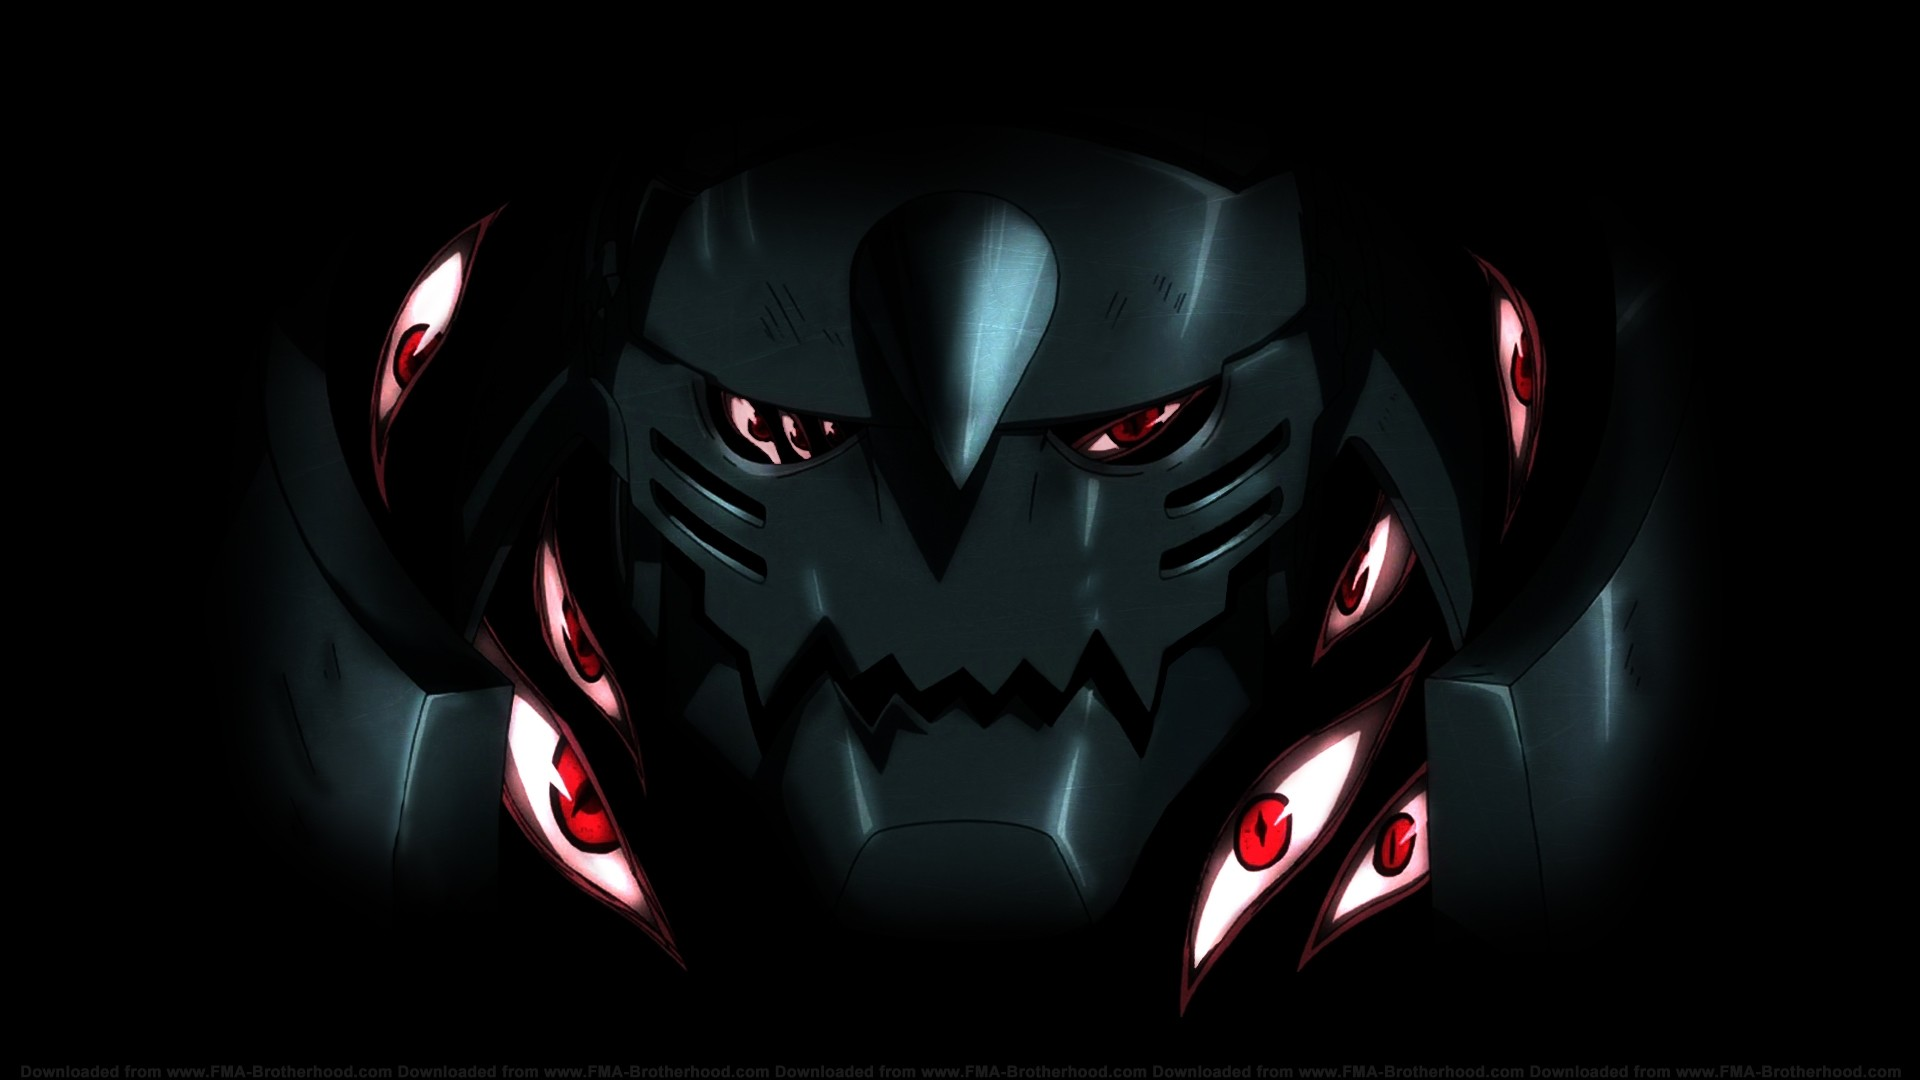 2560x1440 Alphonse Elric Fullmetal Alchemist Wallpaper 2560A 1440 Desktop Images Background Photos Hd Free Windows Samsung Iphone